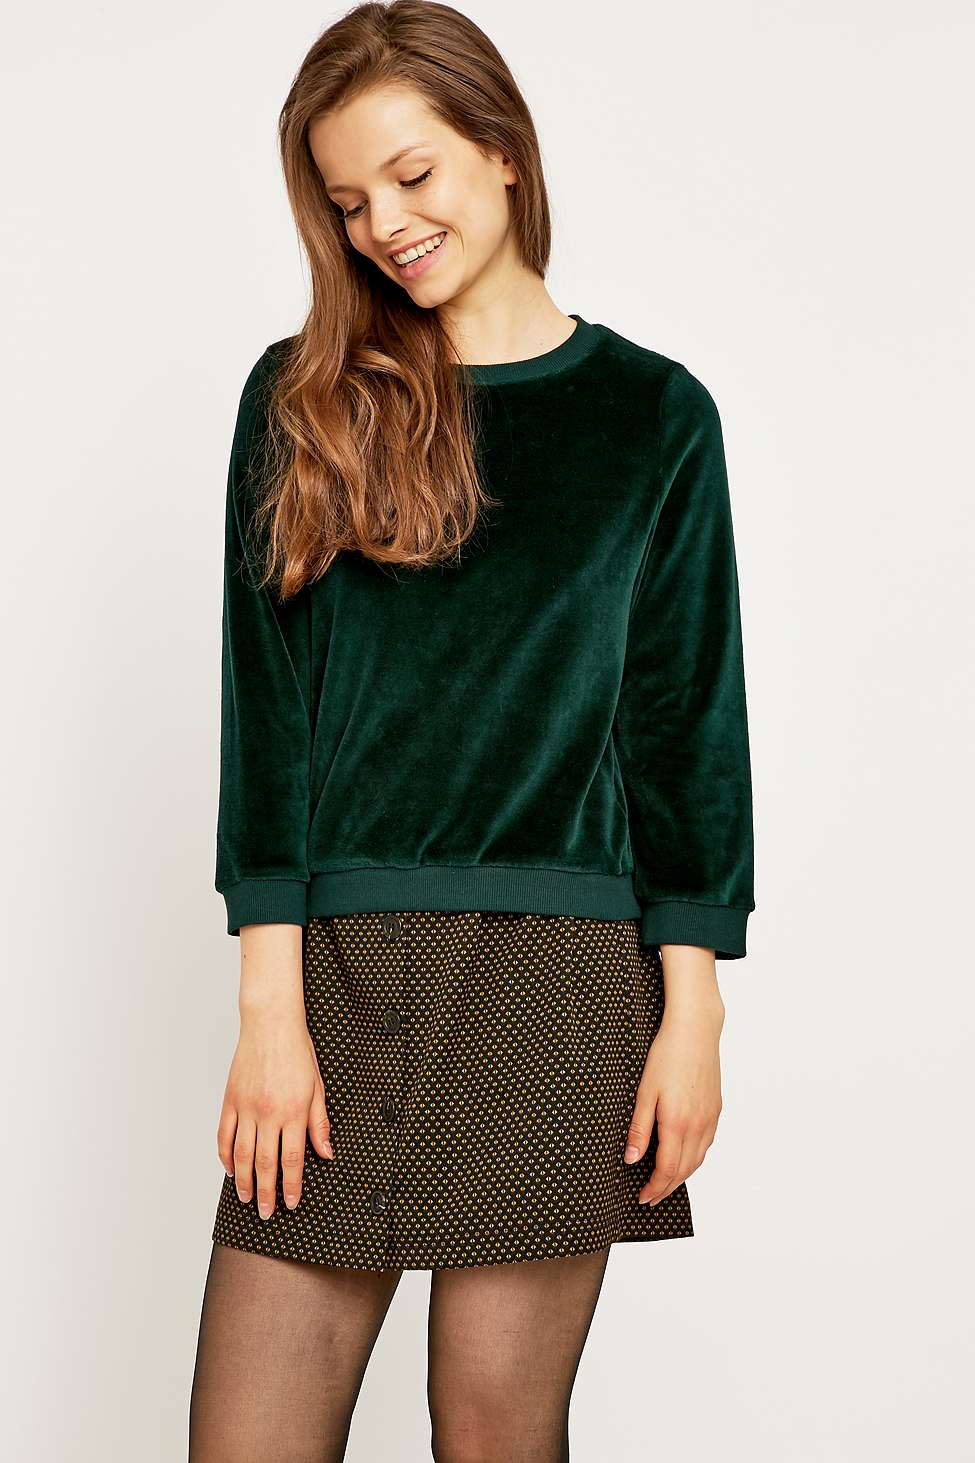 Urban Outfitter - sweater velours